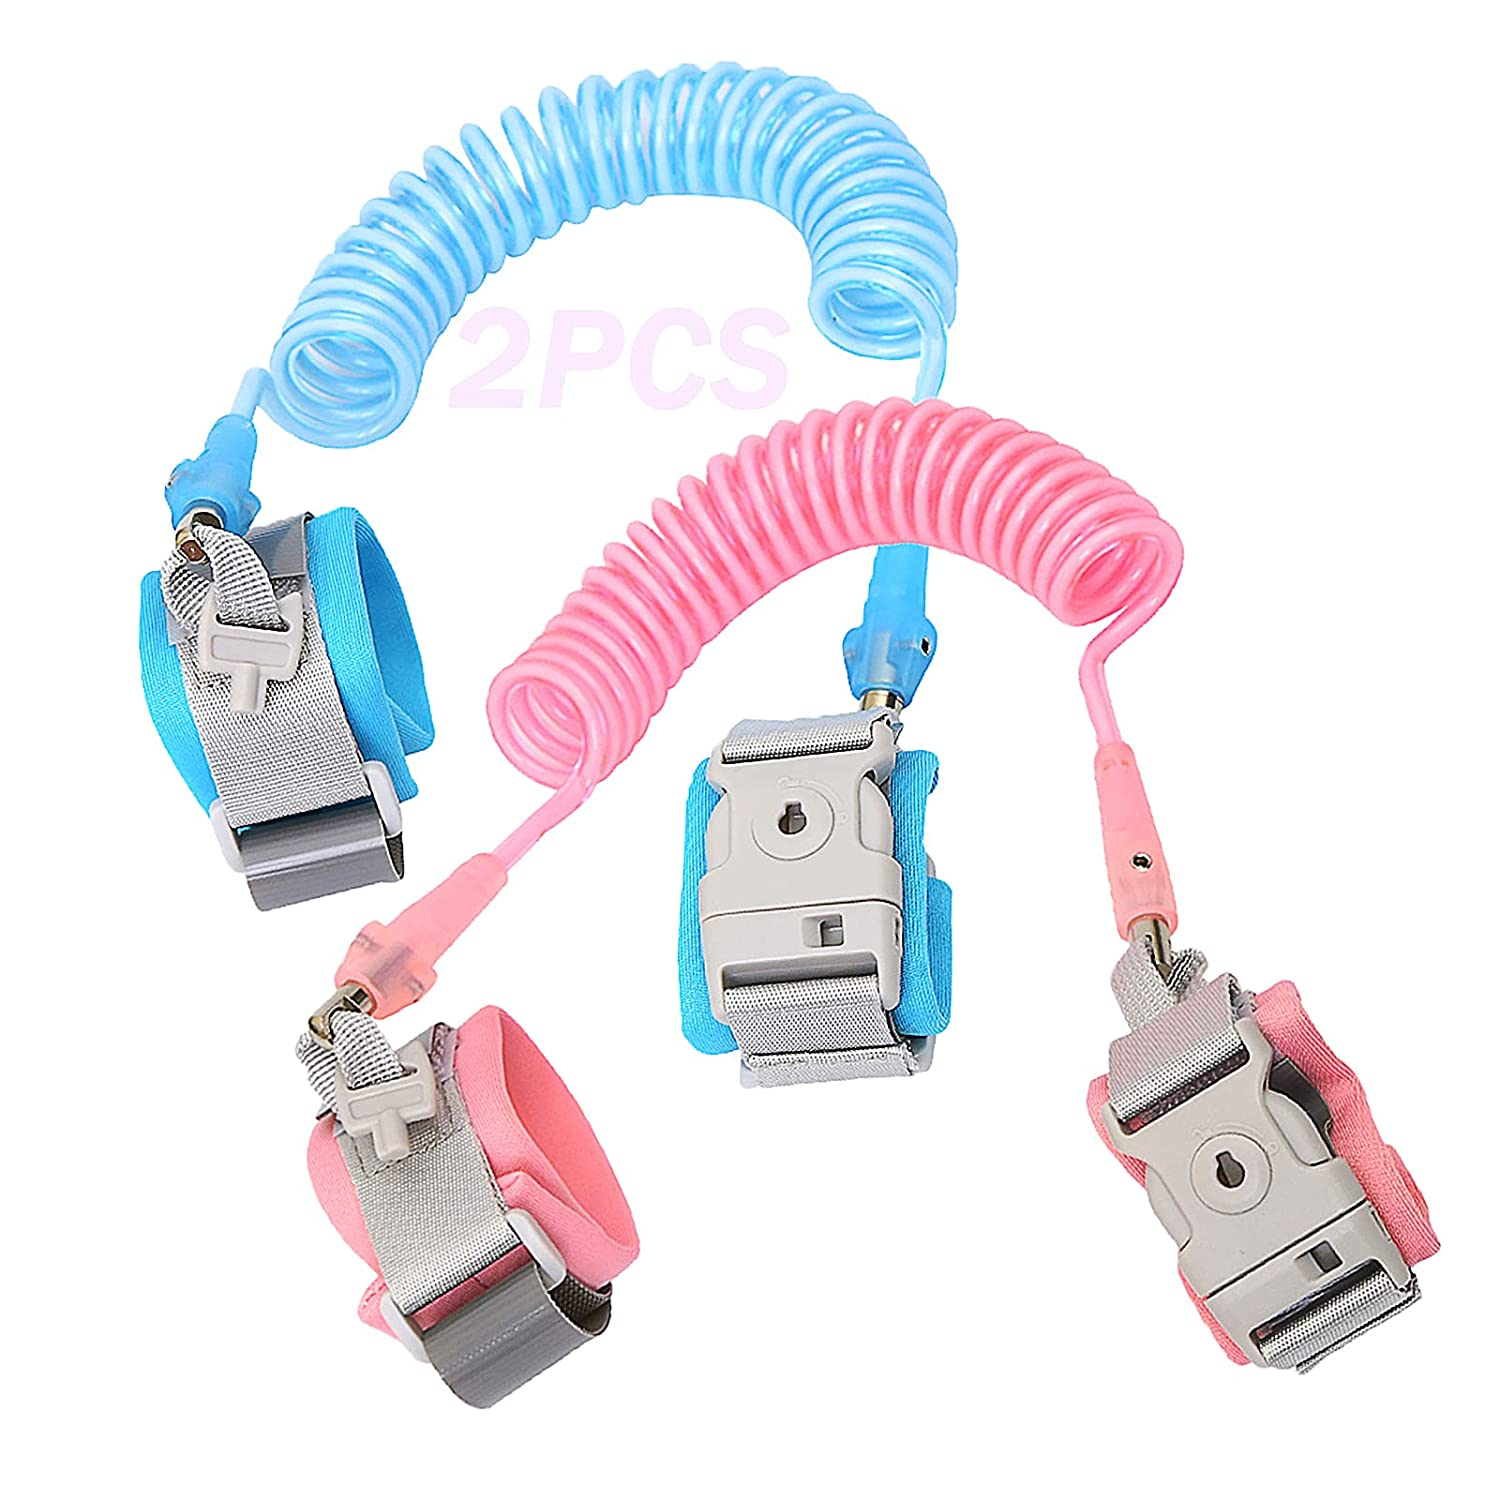 2PCS Anti Lost Wrist Link Safety Wrist Link with Upgraded Key Lock, Child Leash Suitable for Children, Infants and Children Safely (8.2ft Pink+8.2ft Blue)